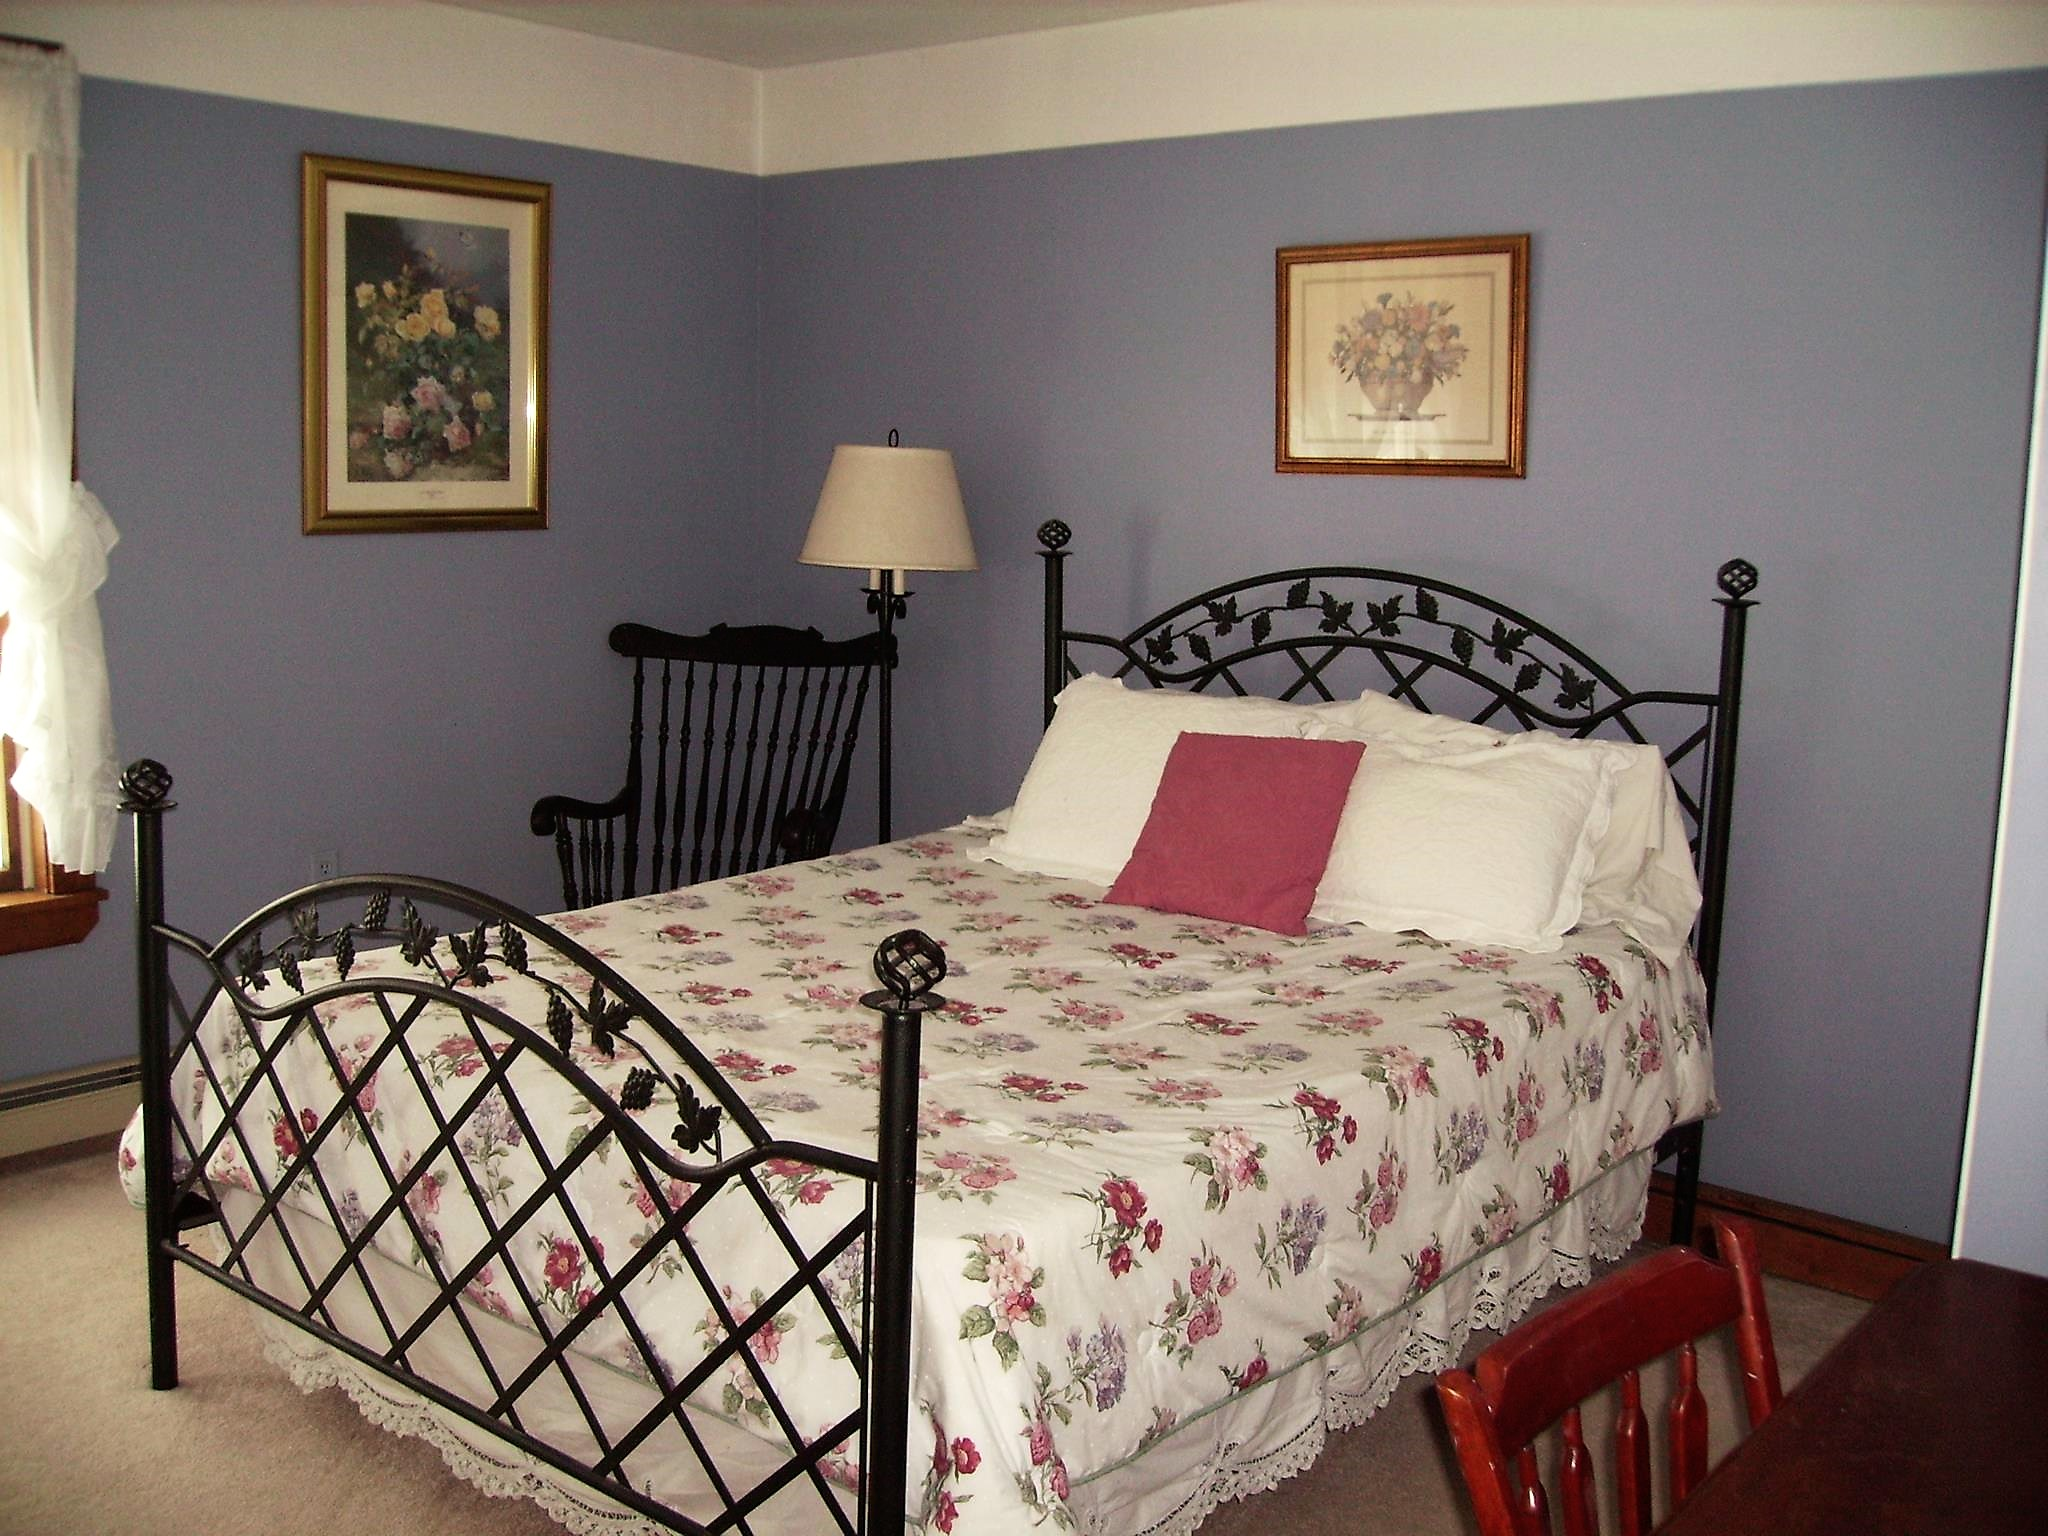 1 Stagecoach Road, Durham, New Hampshire 03824, ,1 BathroomBathrooms,Assisted Living,Rental,Stagecoach Road,1109